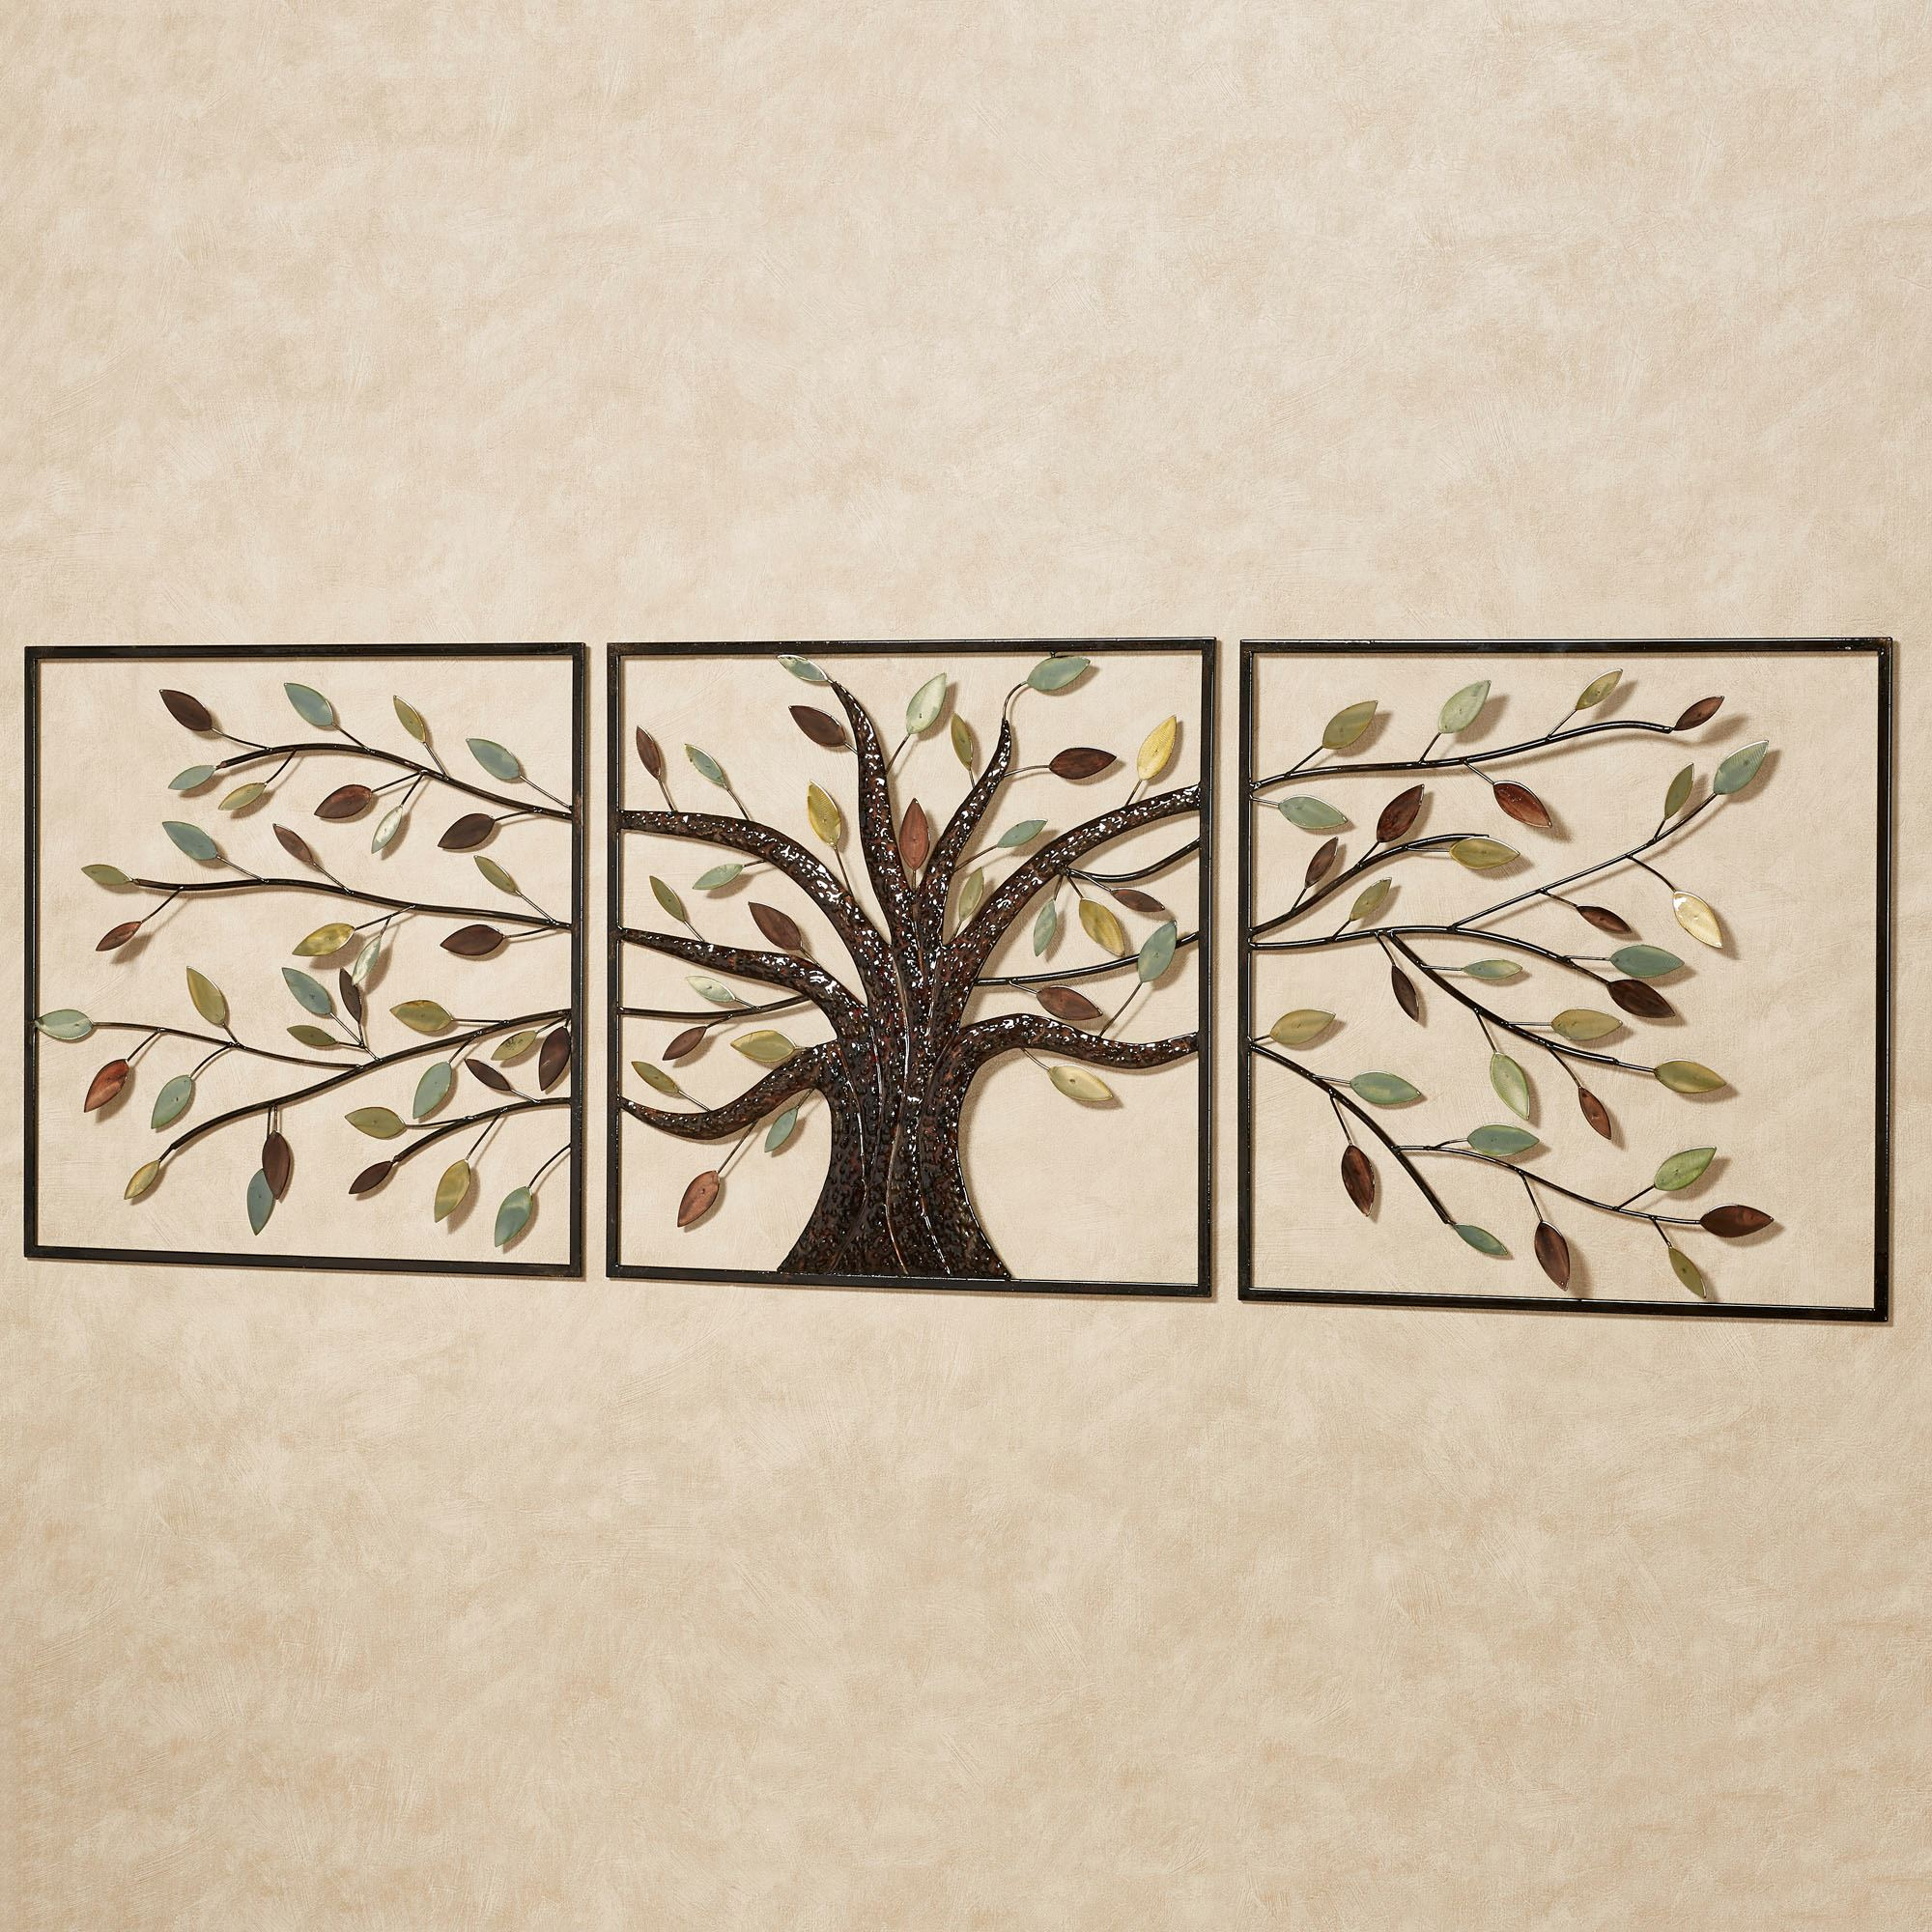 Touch to zoom · Ever Changing Tree Wall Art ...  sc 1 st  Touch of Class : metel wall art - www.pureclipart.com